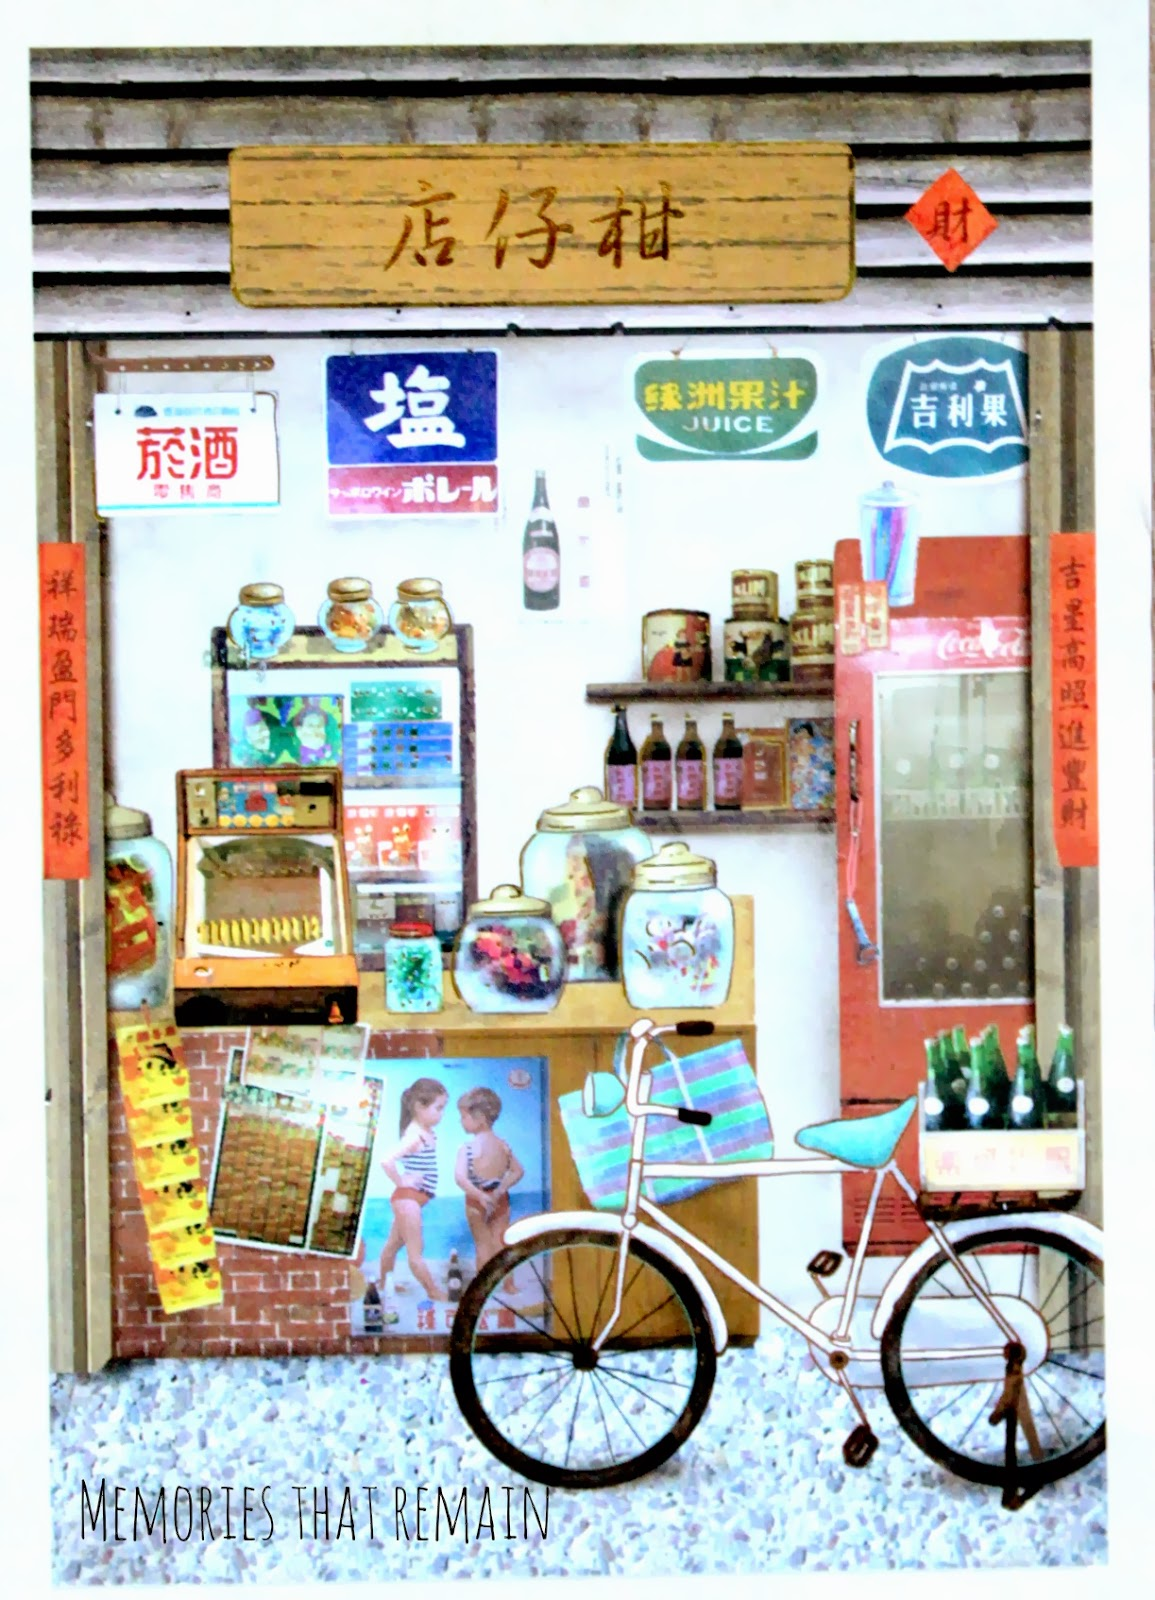 traditional store in Taiwan